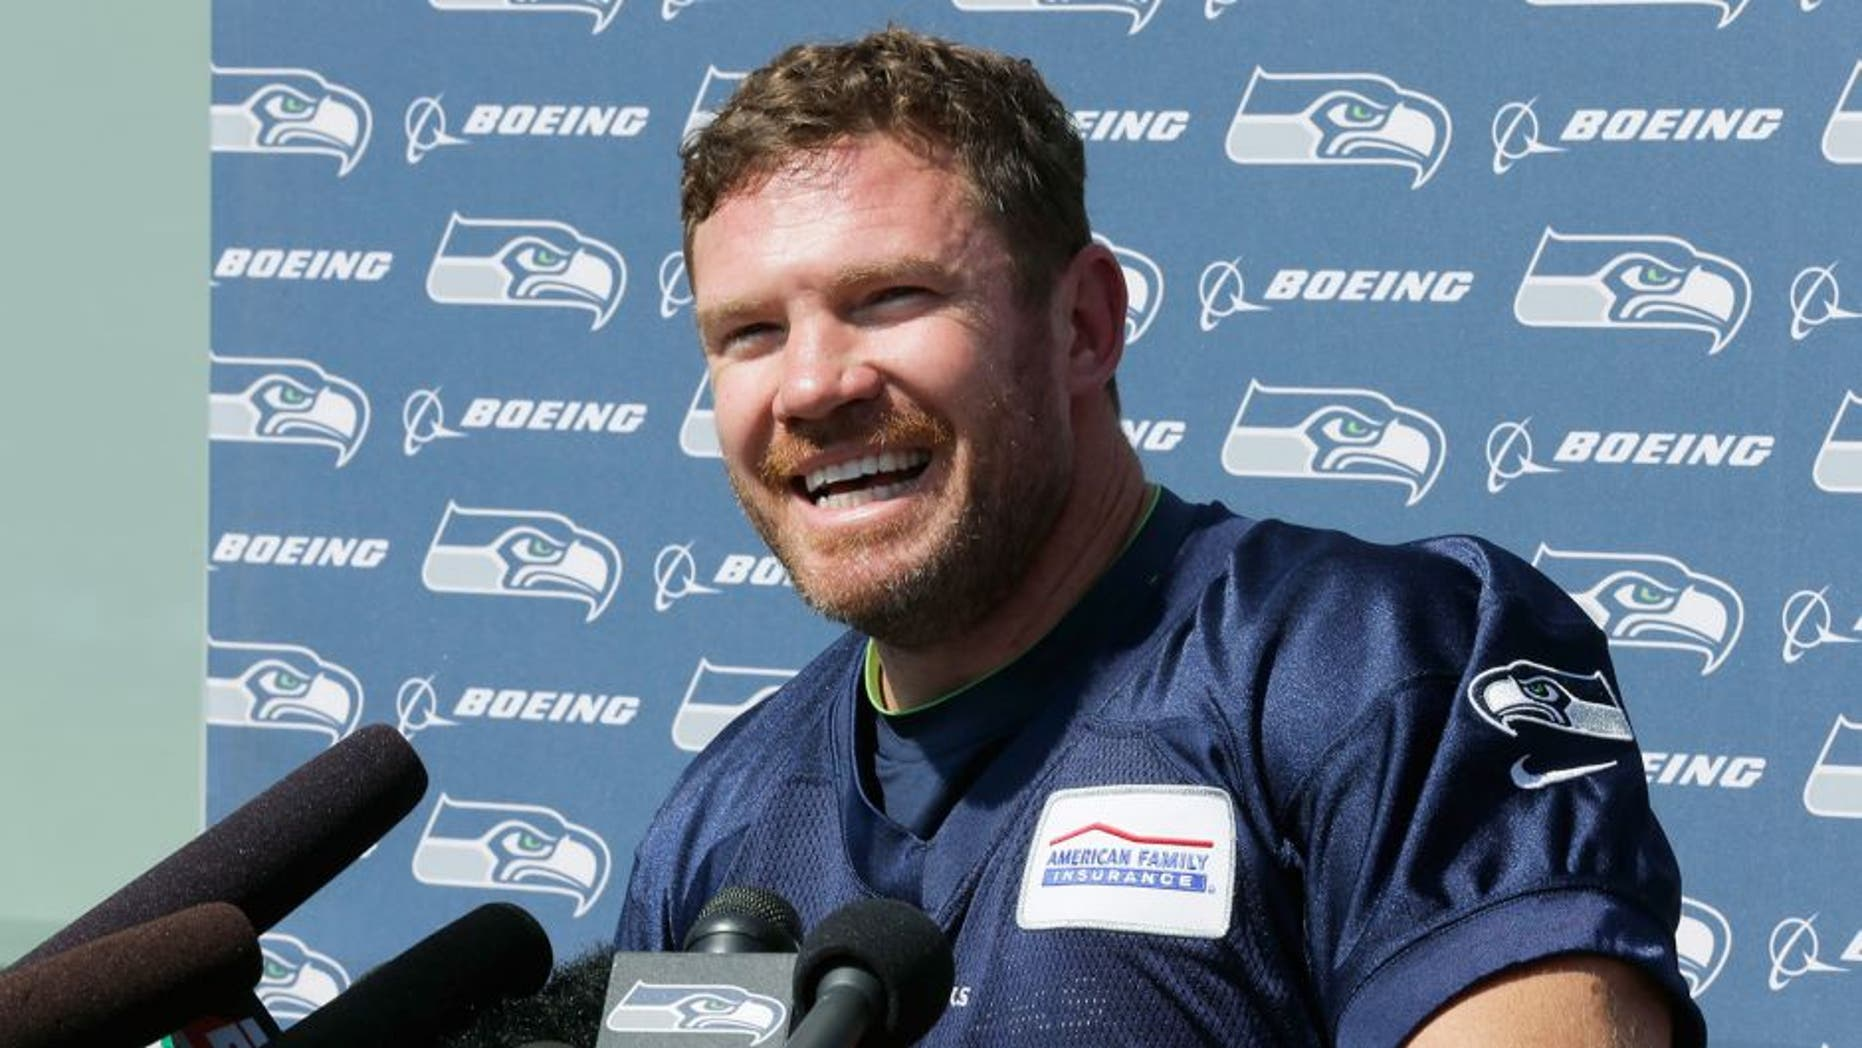 U.S. Army veteran and former Texas long snapper Nate Boyer talks to reporters after Seattle Seahawks minicamp.